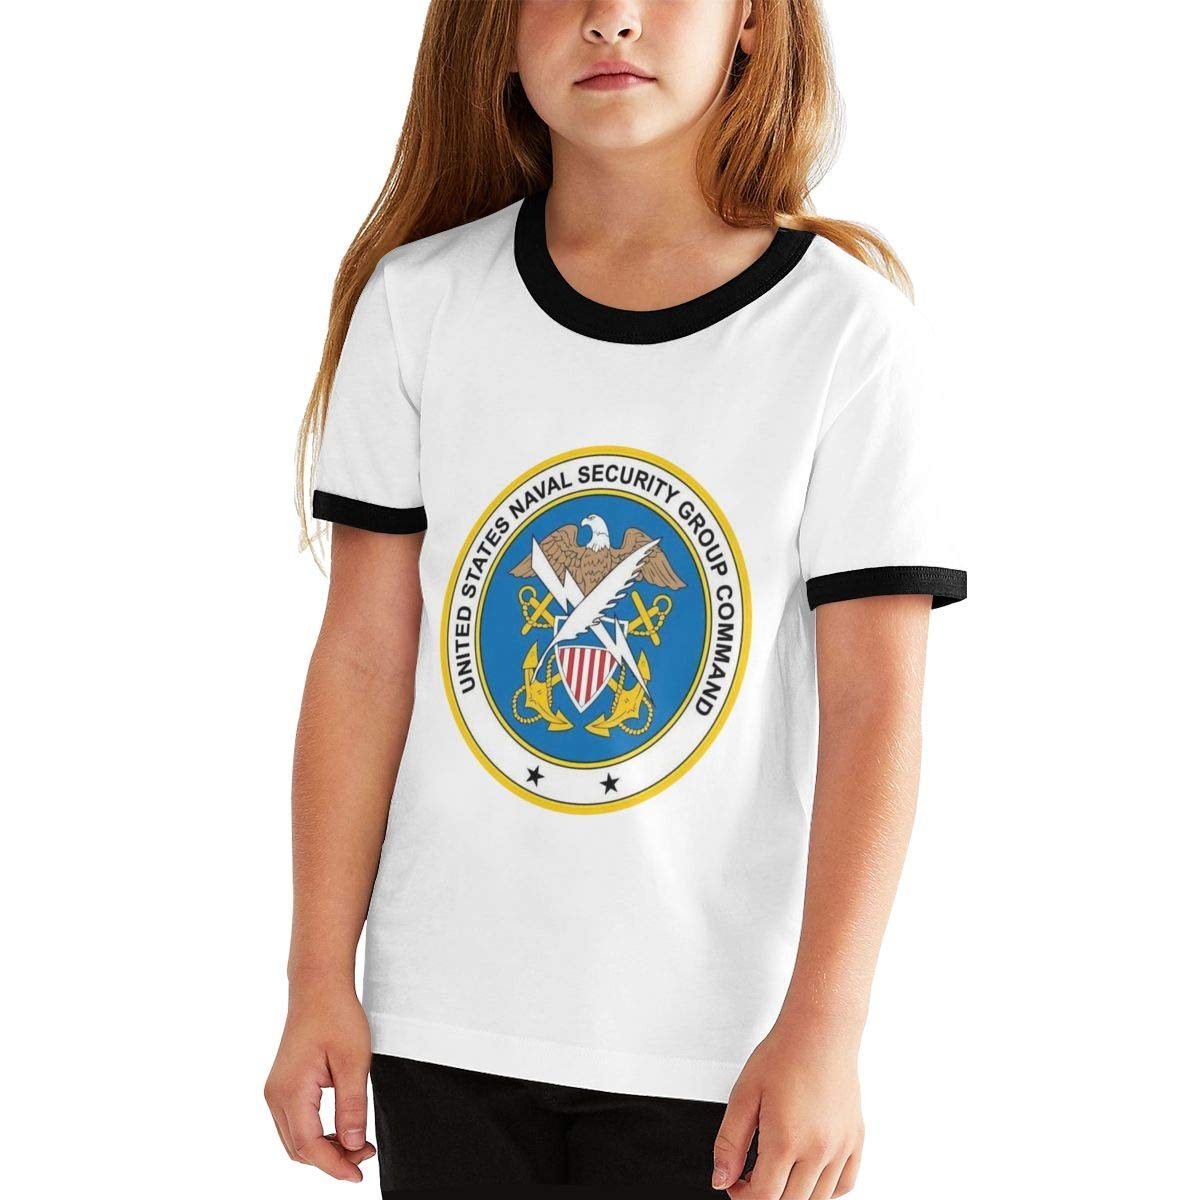 Kids Or Little Boys and Girls US Navy Naval Security Group Command Unisex Childrens Short Sleeve T-Shirt